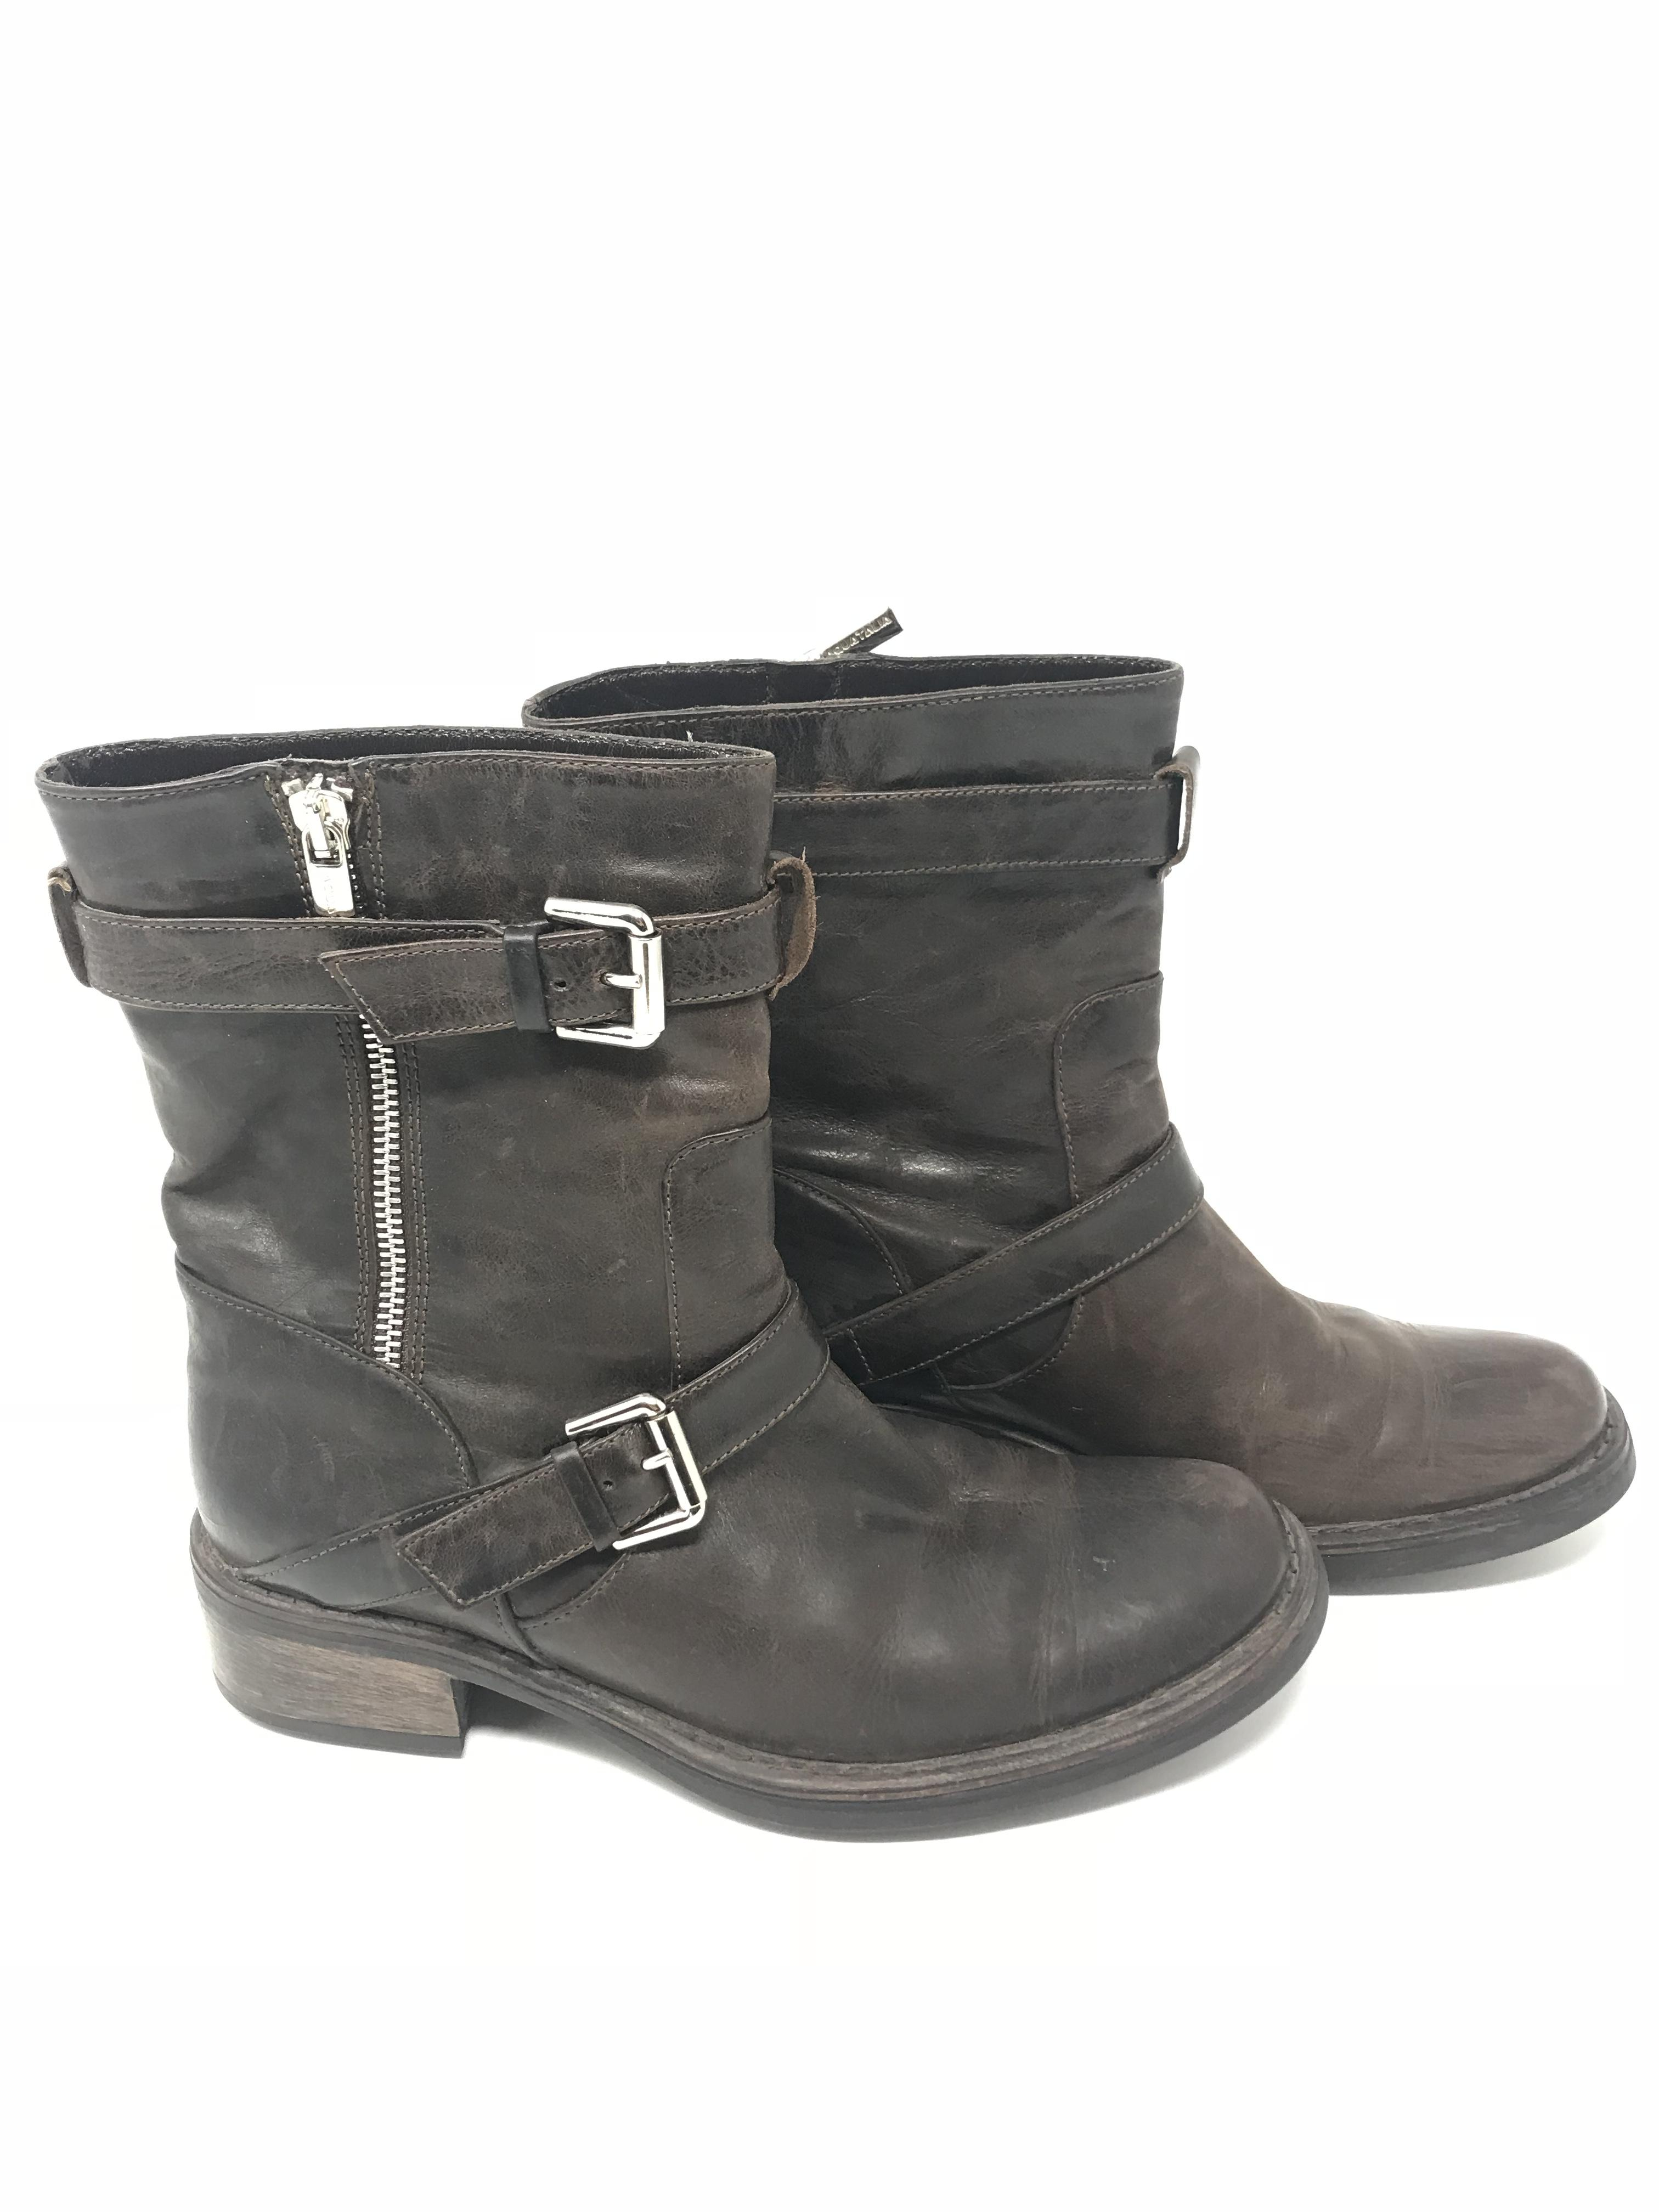 Brown boot Shoes Price: $98.99